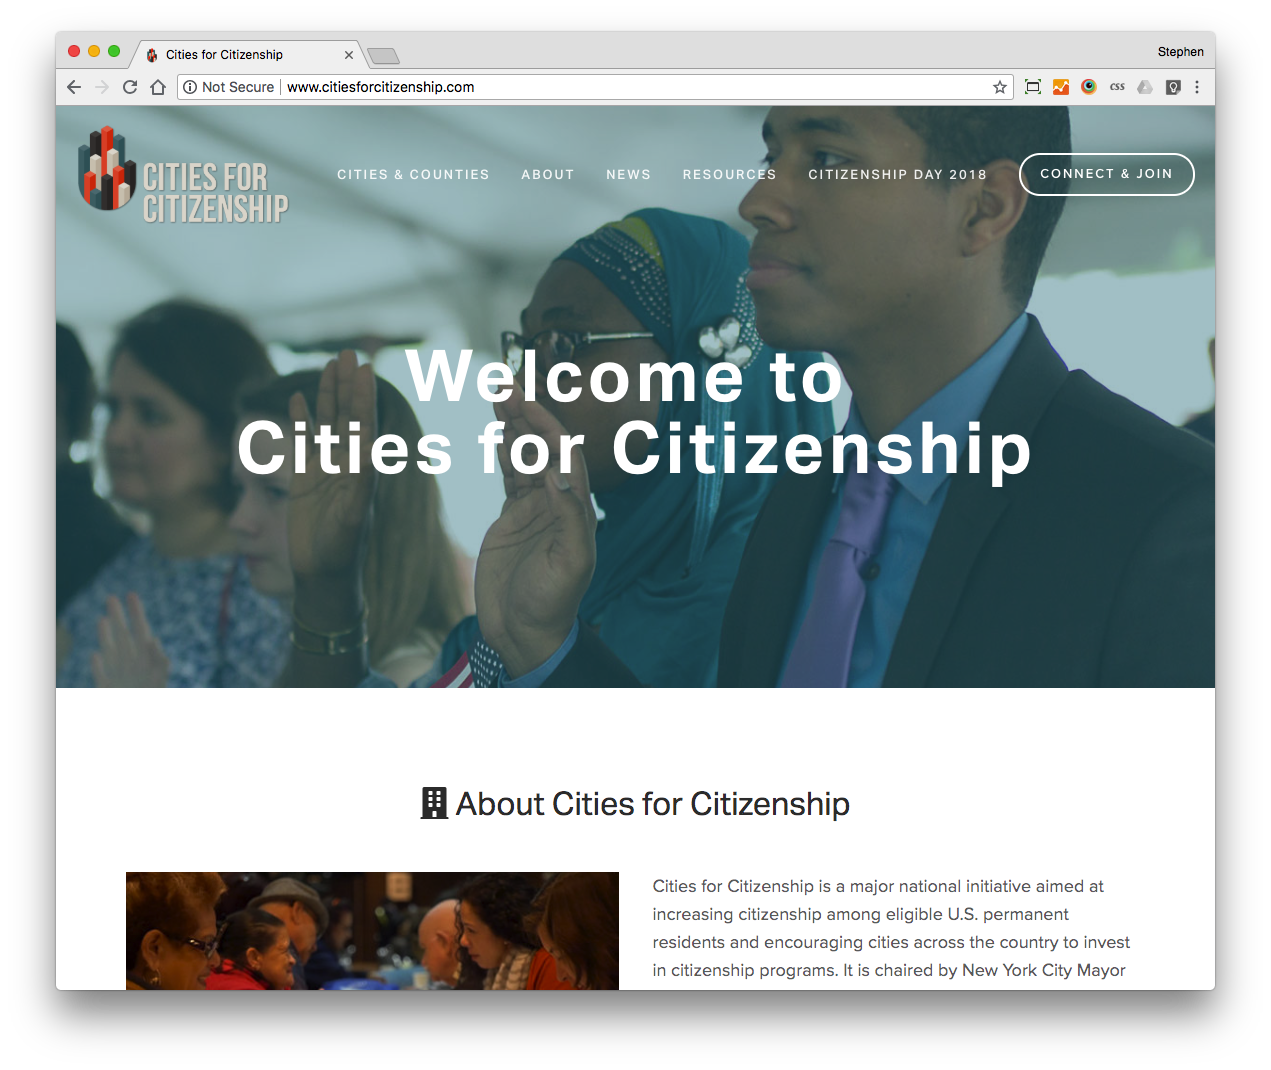 Cities for Citizenship